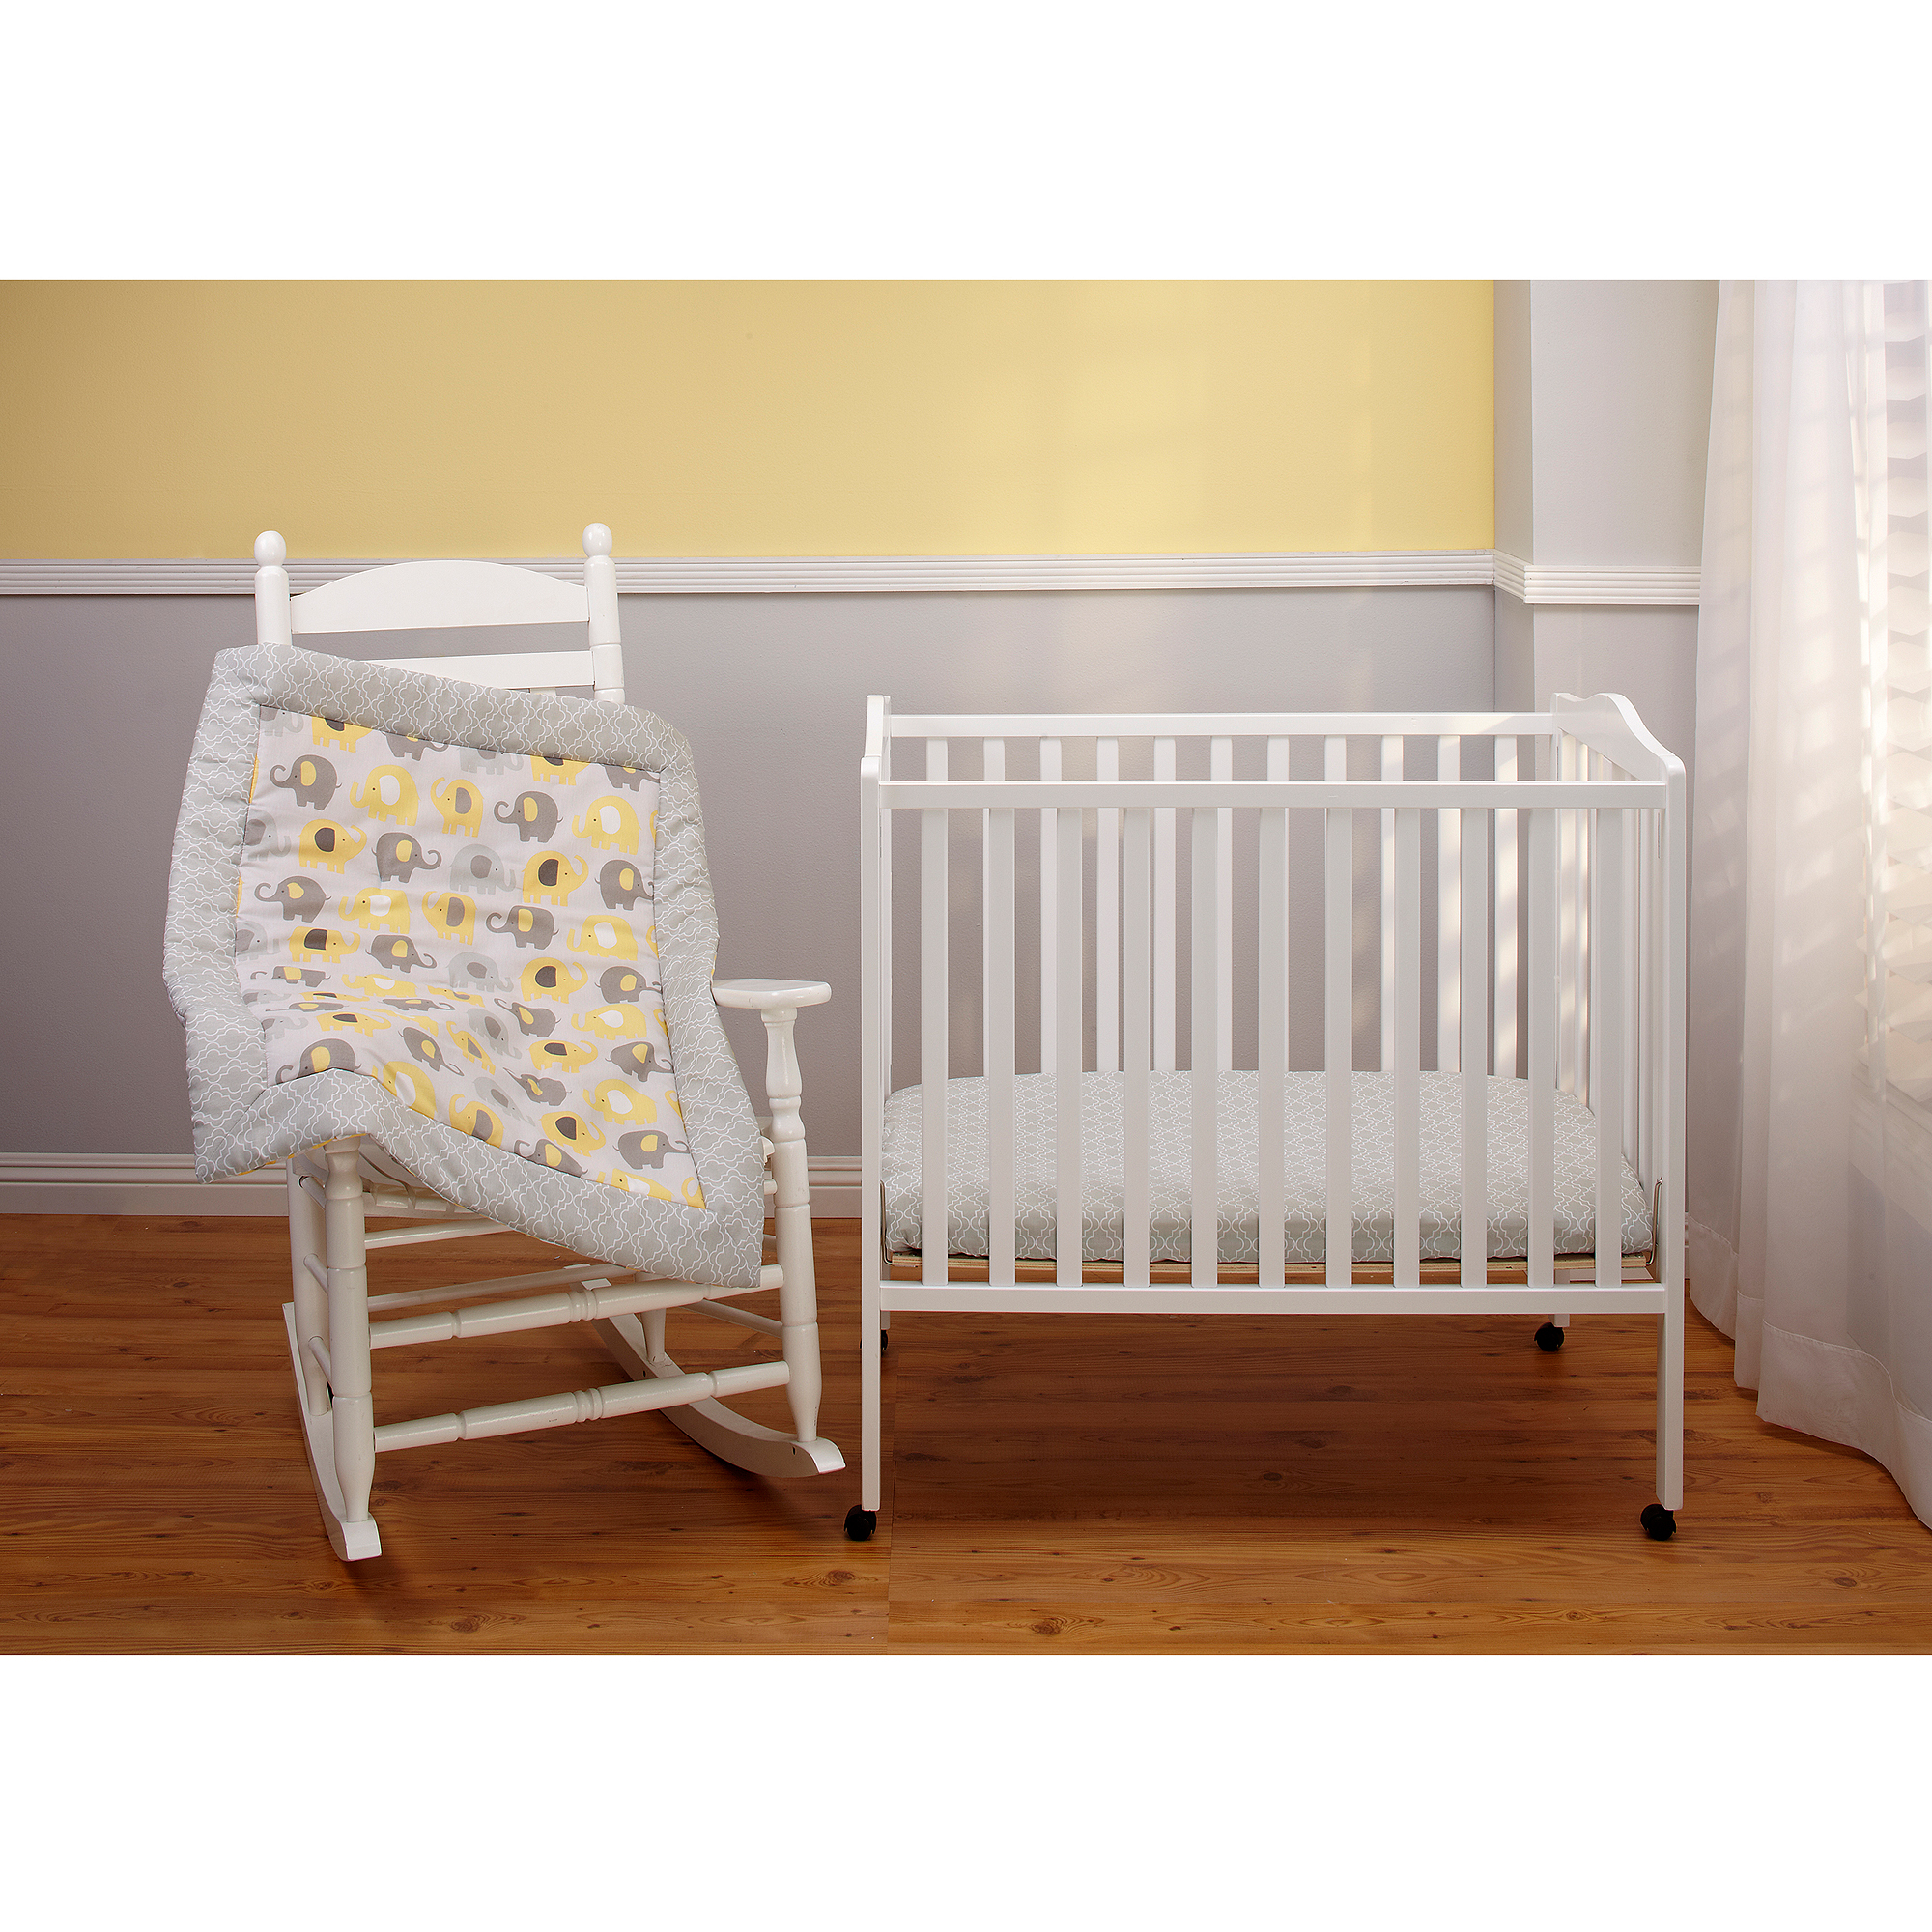 jcpenney crib bedroom jc nursery ss of baby modern cool size s u designer full ideas bed bedding sets cribs